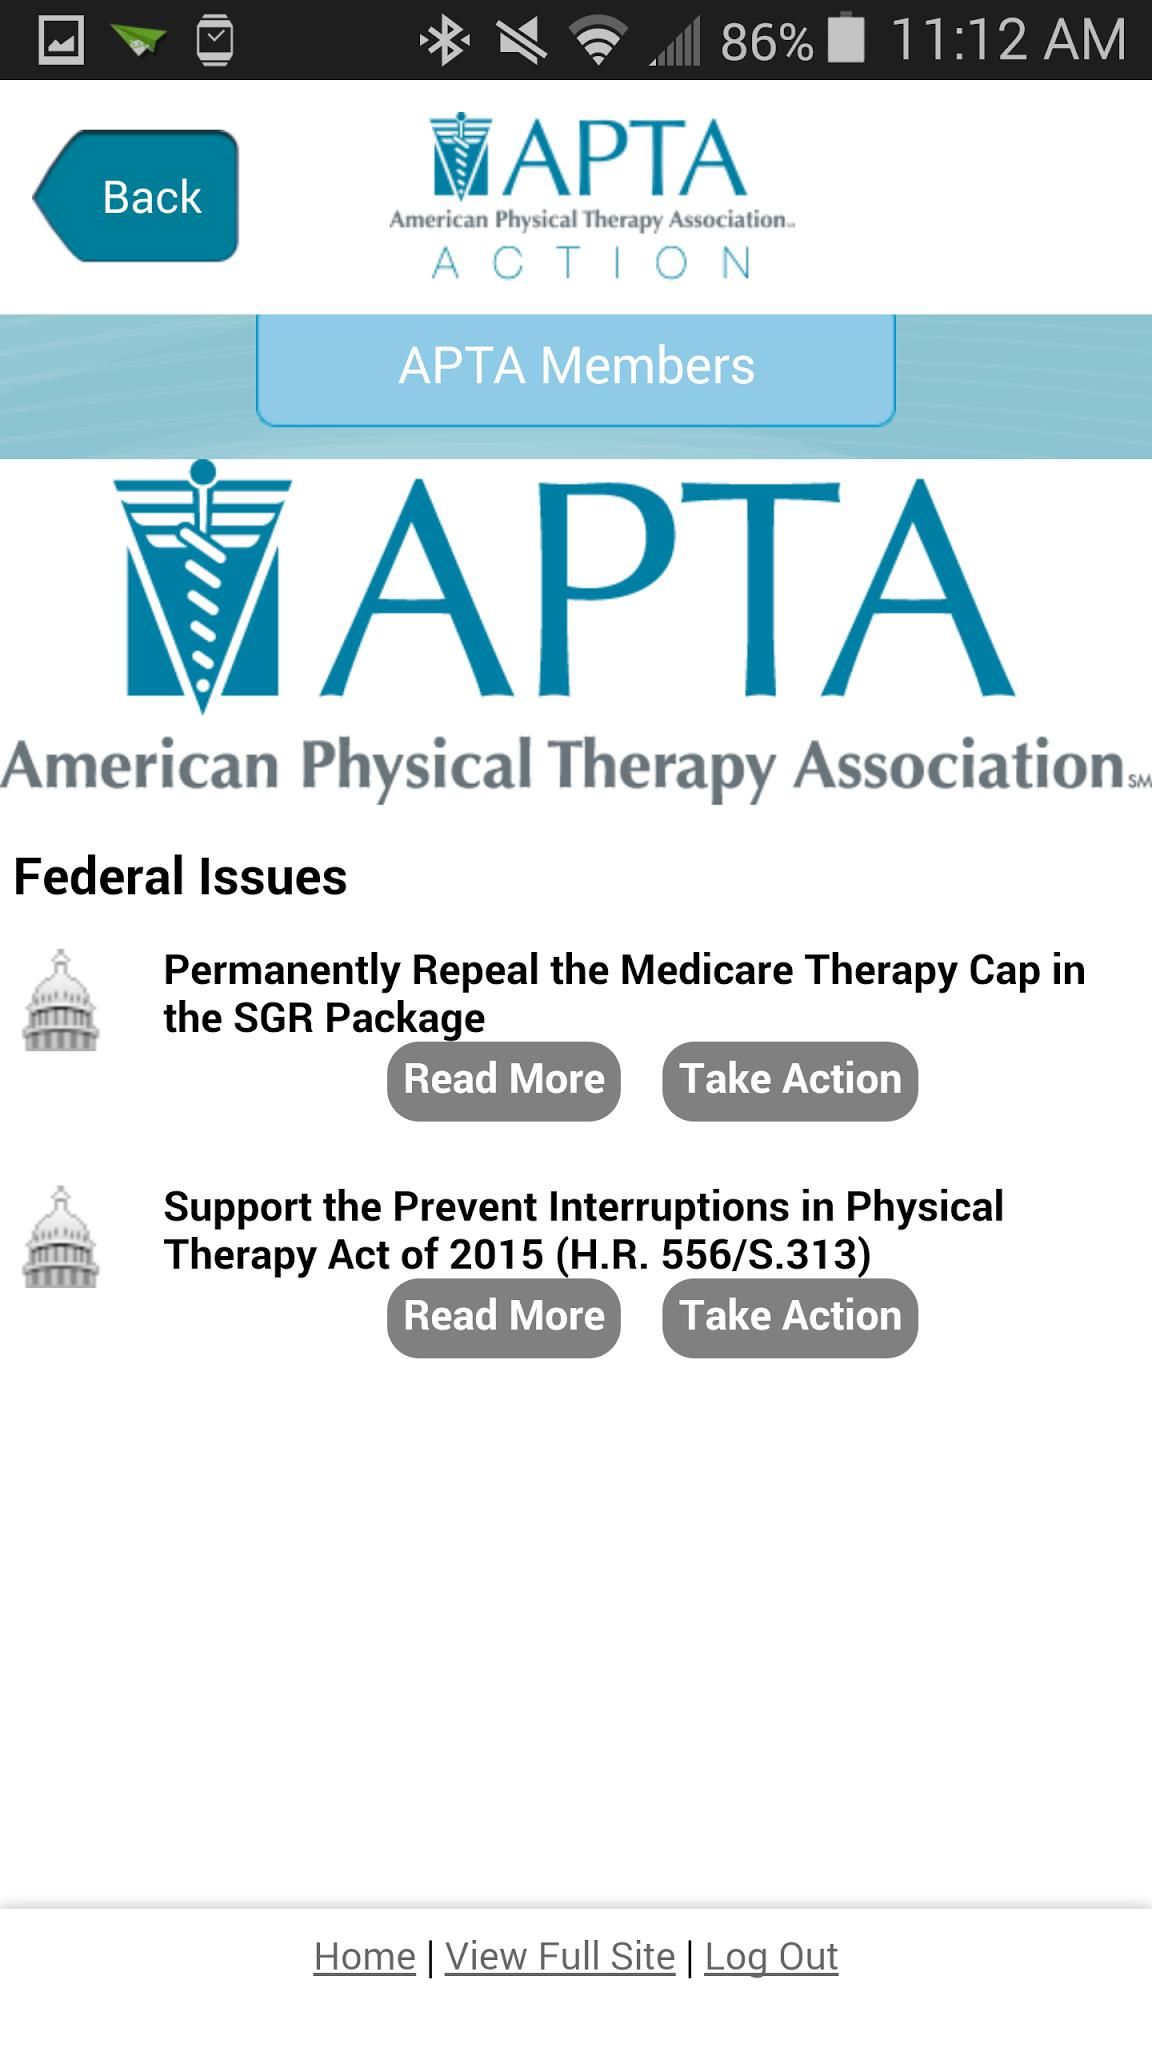 American physical therapy - Pic3